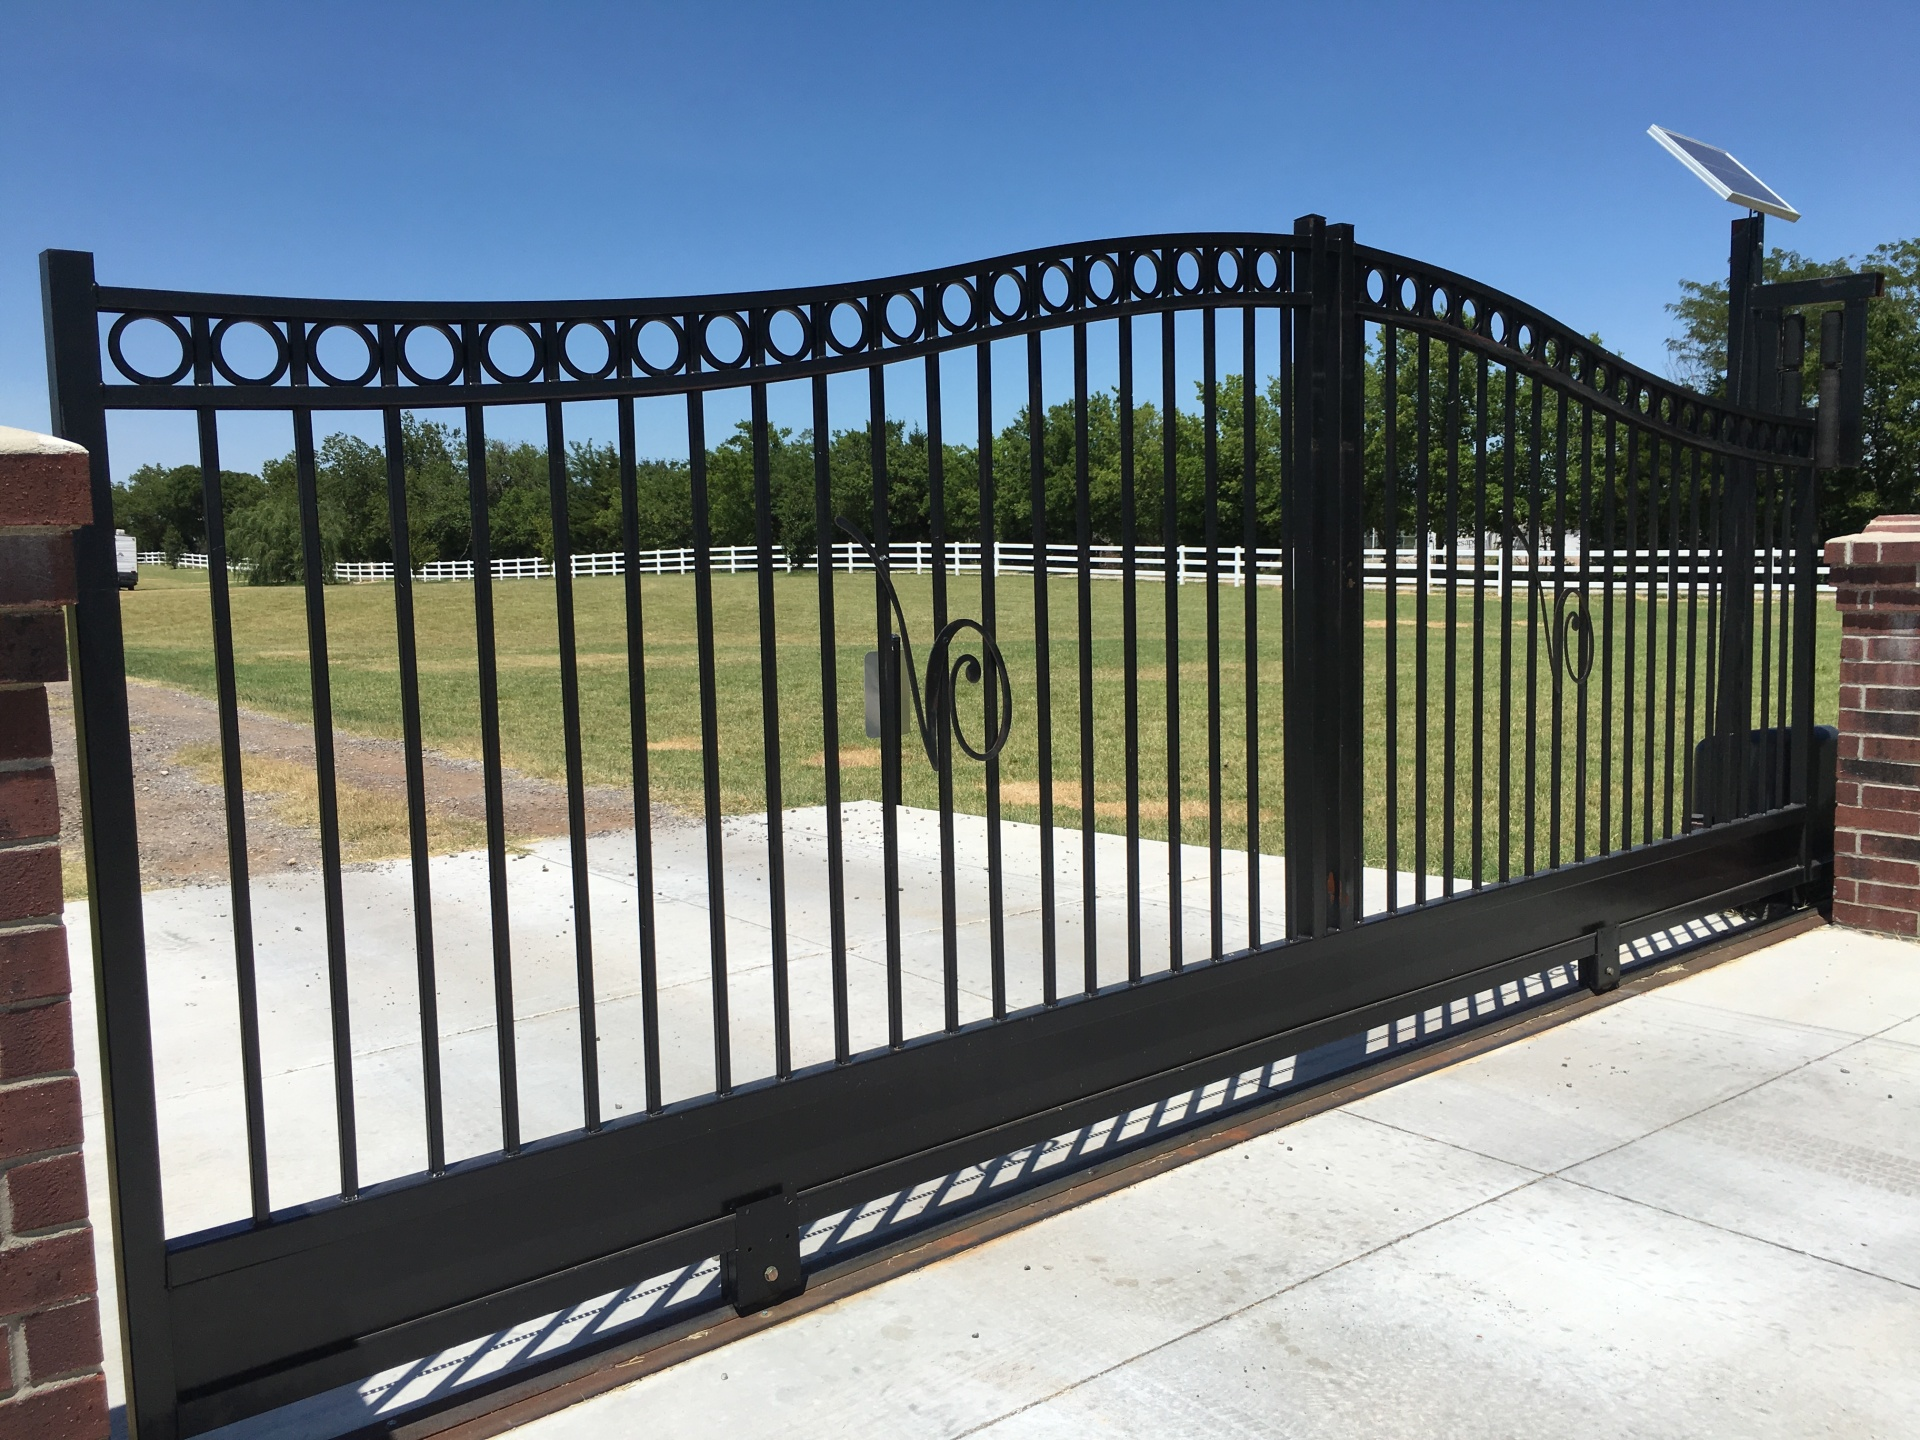 Beautiful - Iron Driveway Gate - Gate opener - slide gate - solar access - edmond fence company - oklahoma fence